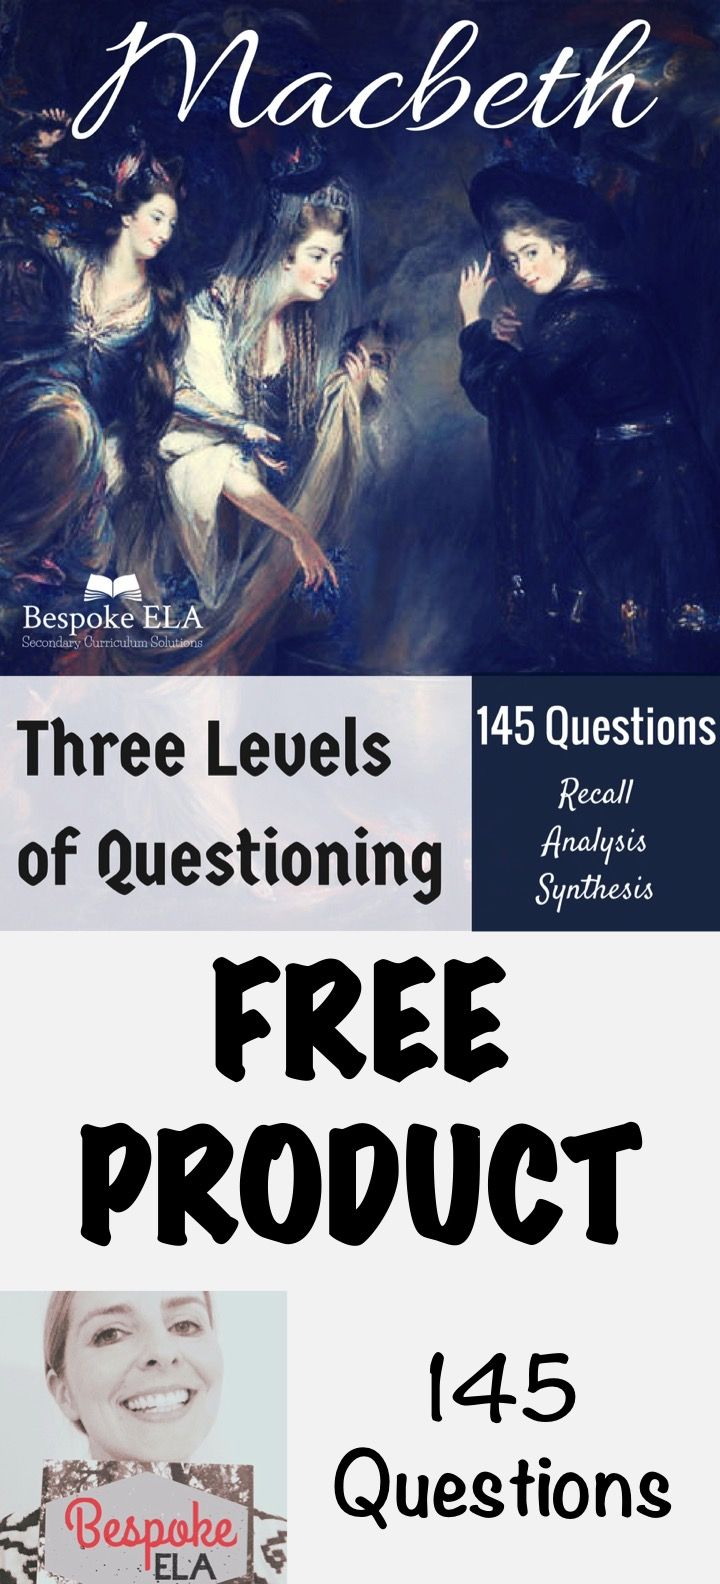 This FREE PRODUCT by Bespoke ELA contains 145 questions for studying Shakespeare's play Macbeth. The questions are divided into the three different levels of questioning: recall, interpretation & analysis, and synthesis.   These questions can serve a variety of uses for your Macbeth unit including:  --Reading Checks & Quizzes --Discussion Stems --Essay Prompts  With 145 questions in total, your students will be able to go into great depth with their study of Macbeth!